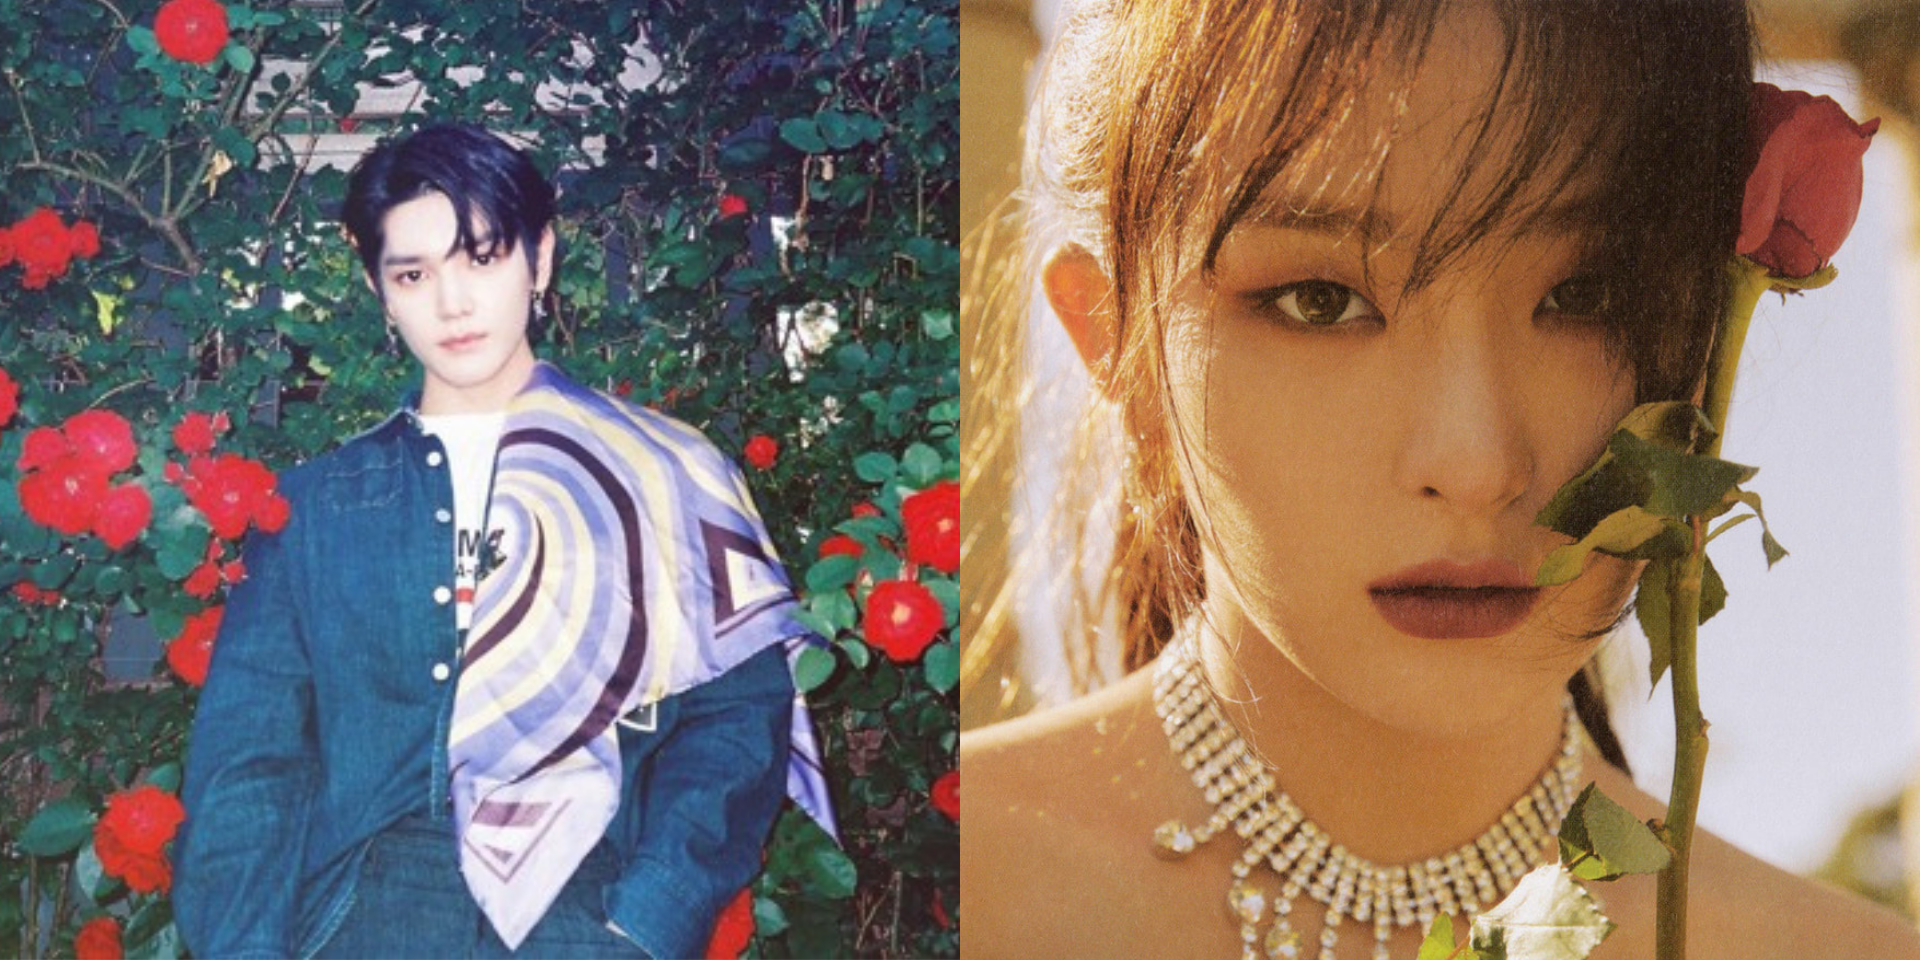 NCT's Taeyong and Red Velvet's Seulgi drop collaborative track 'Rose' – listen